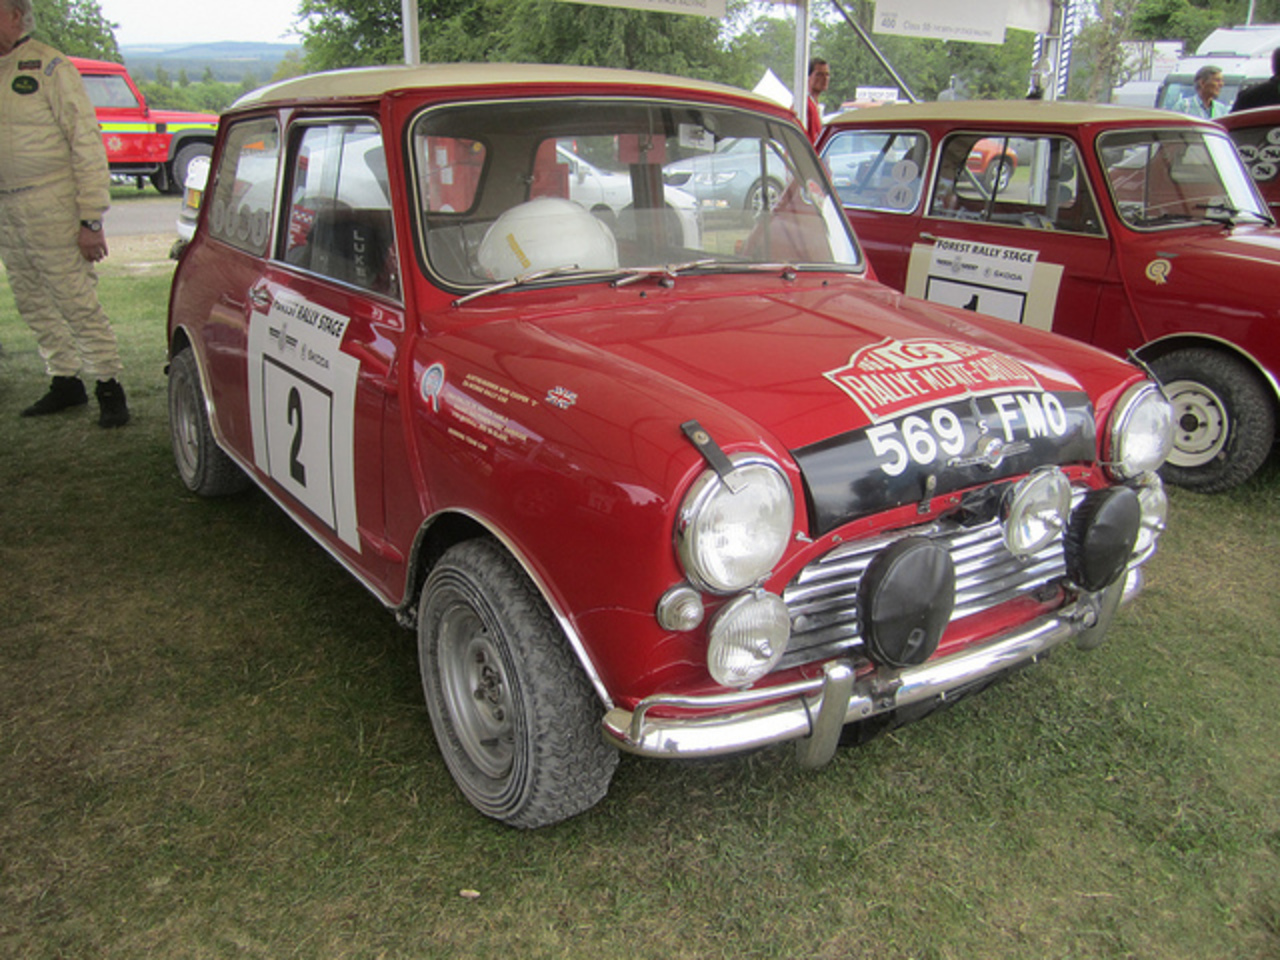 1963 Morris Mini Cooper S Rally Car | Flickr - Photo Sharing!